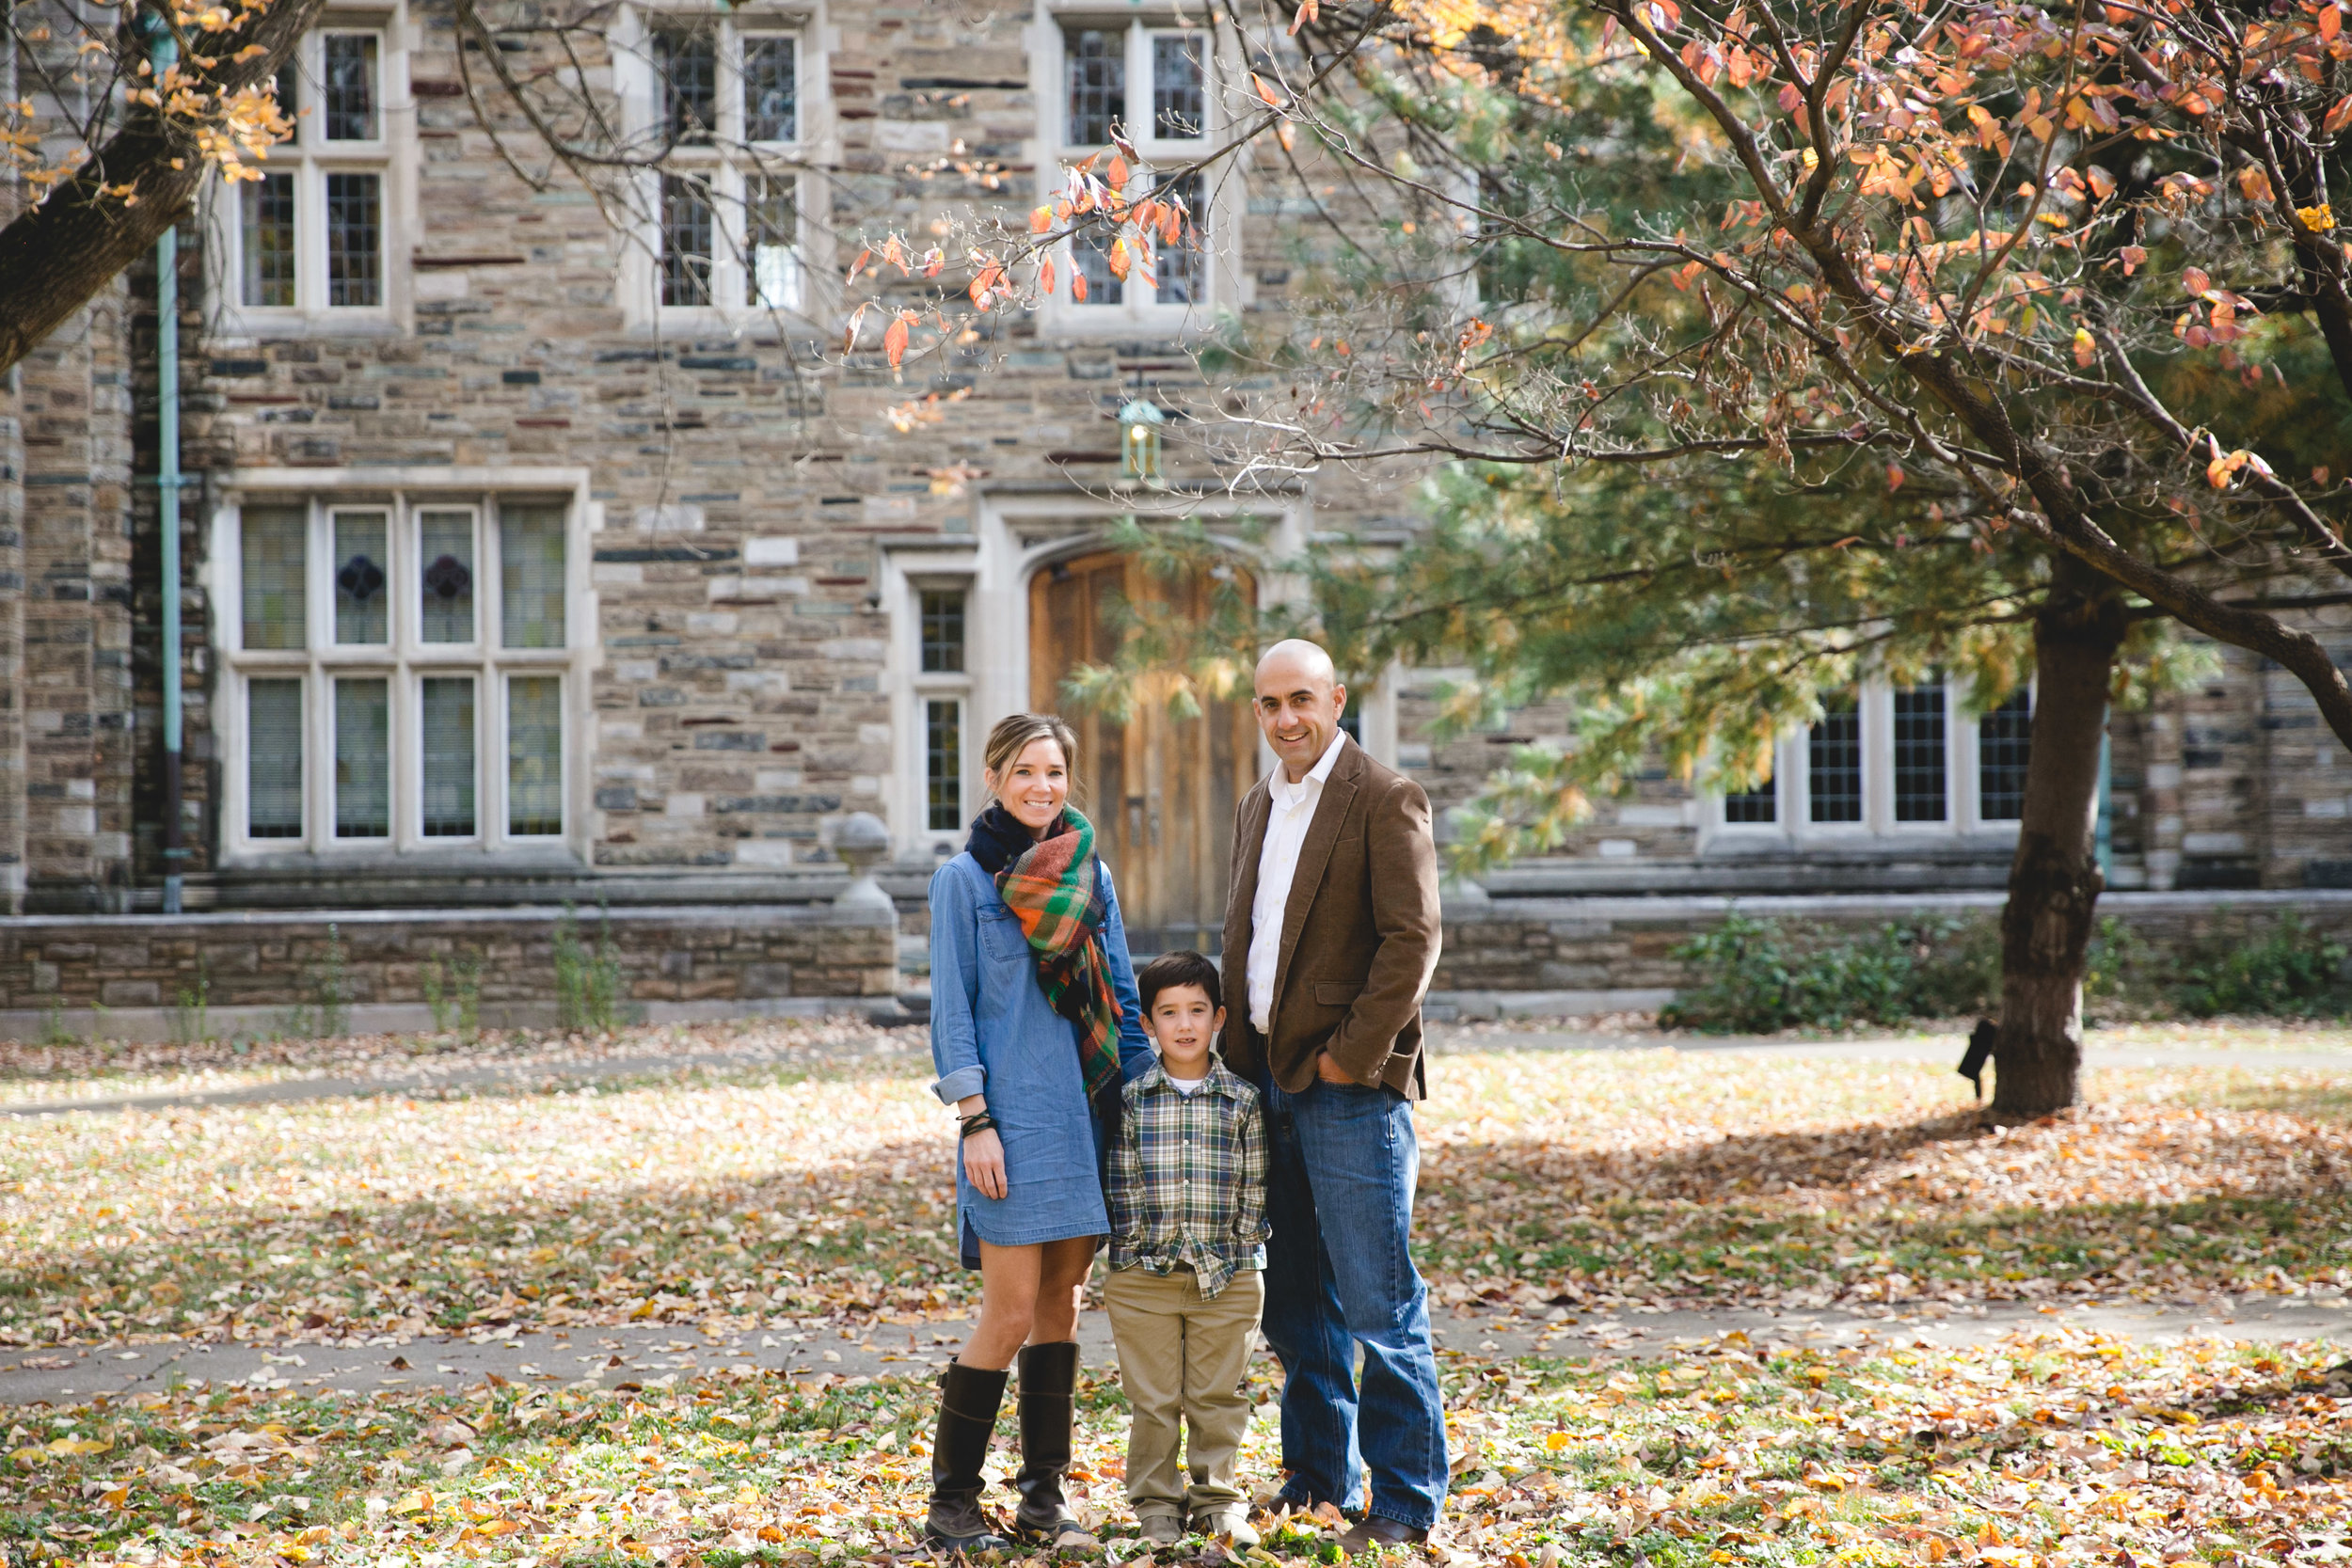 LisaDiederichPhotography_TheMagnessFallFamilySession-1.jpg